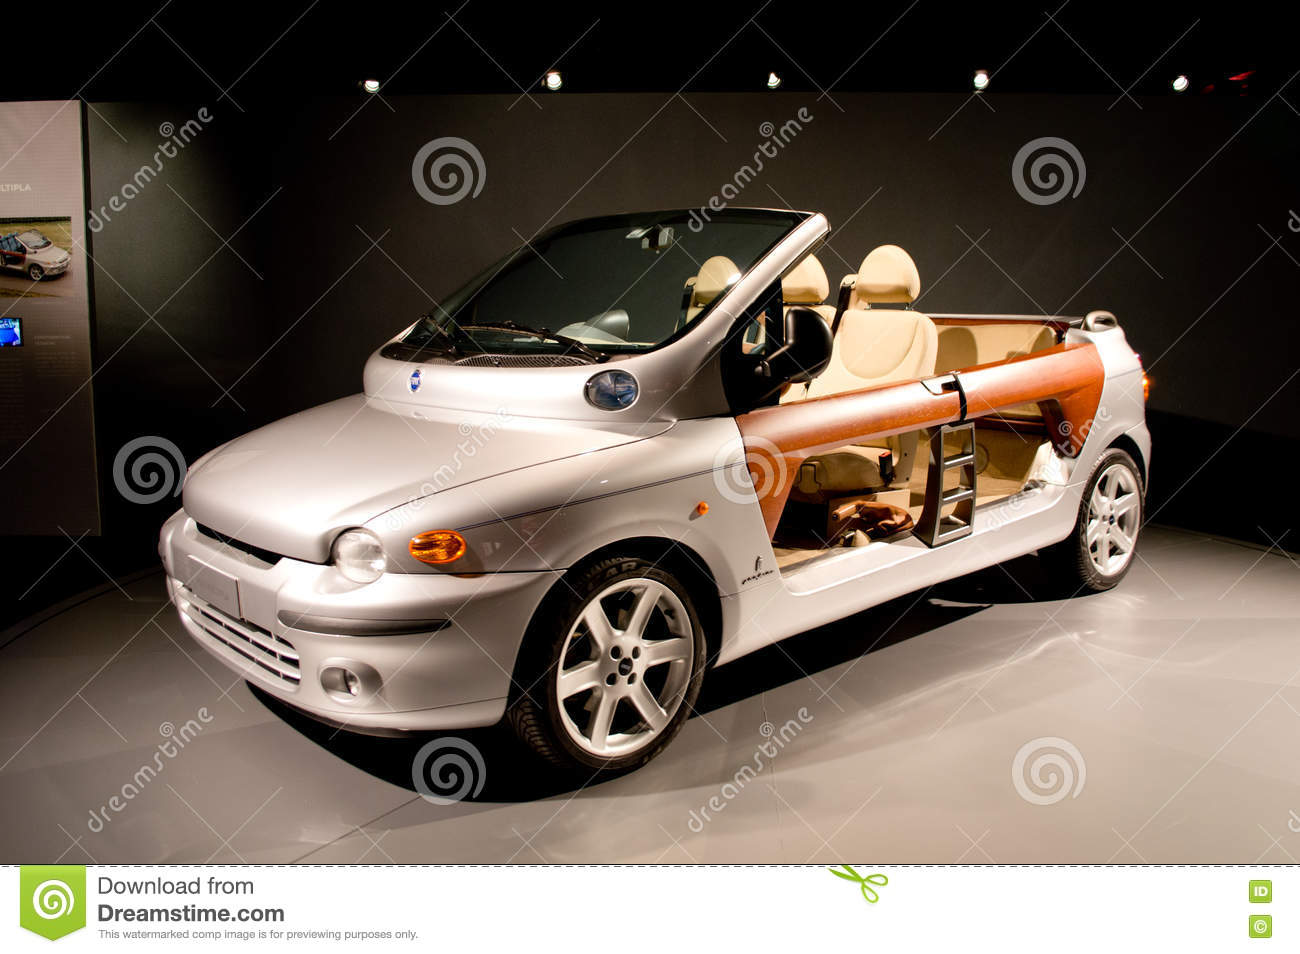 fiat multipla spider at useo nazionale dell automobile editorial stock photo image of engine. Black Bedroom Furniture Sets. Home Design Ideas